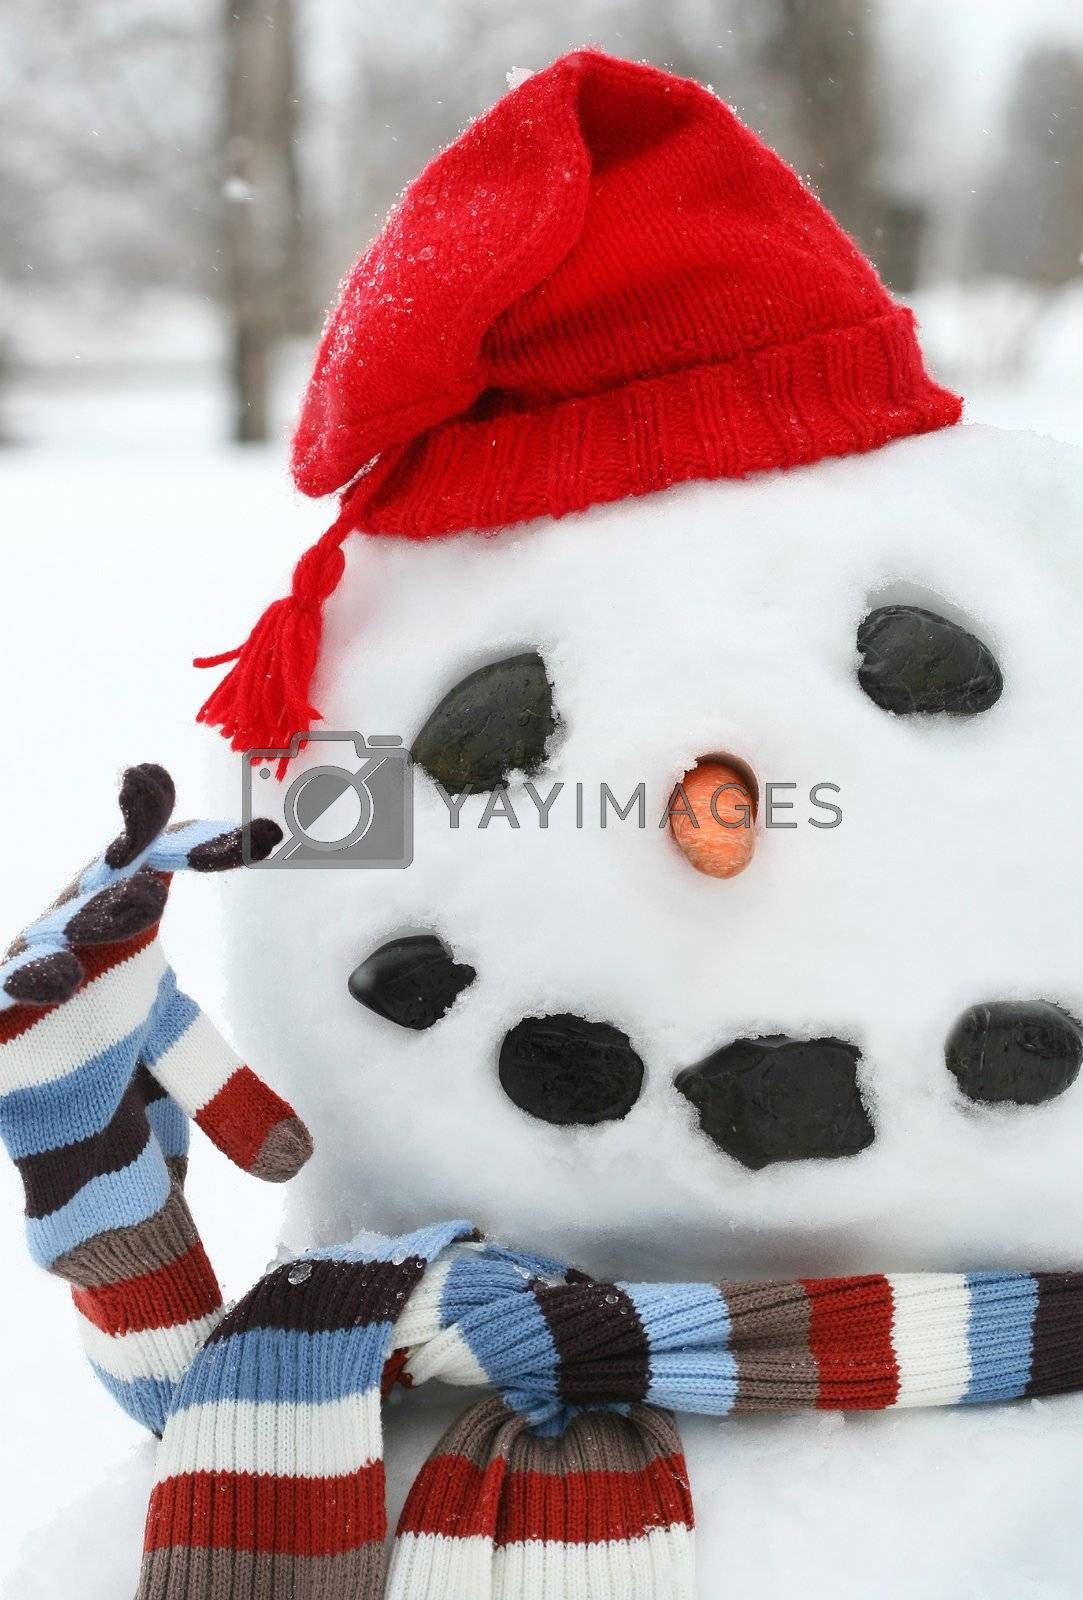 Smiley face snowman by Sandralise